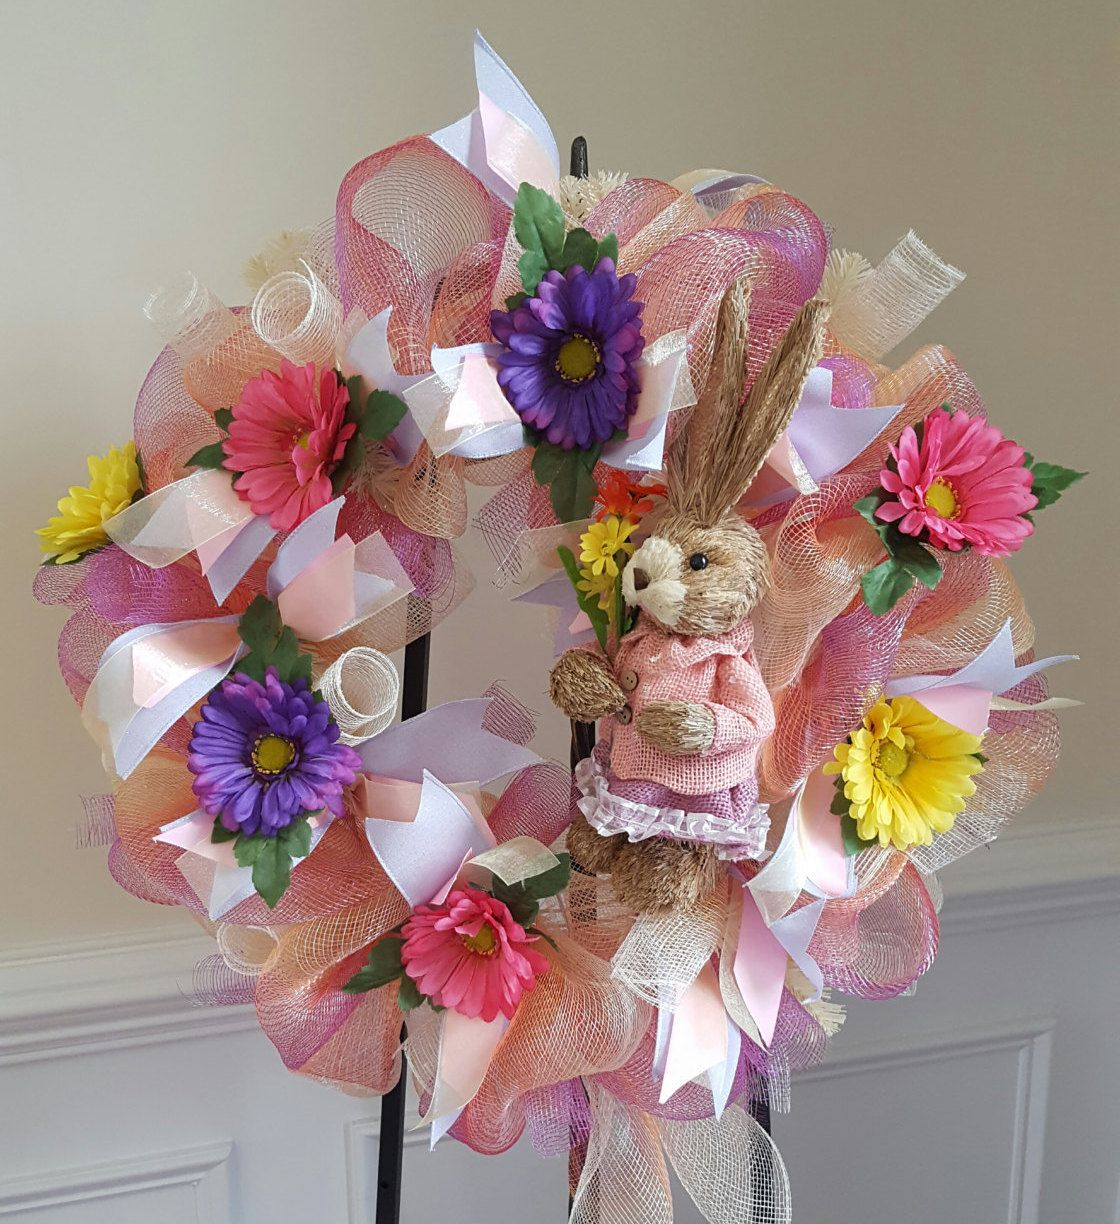 Spring wreath adorned by sisal bunny and pink, purple and yellow spring flowers